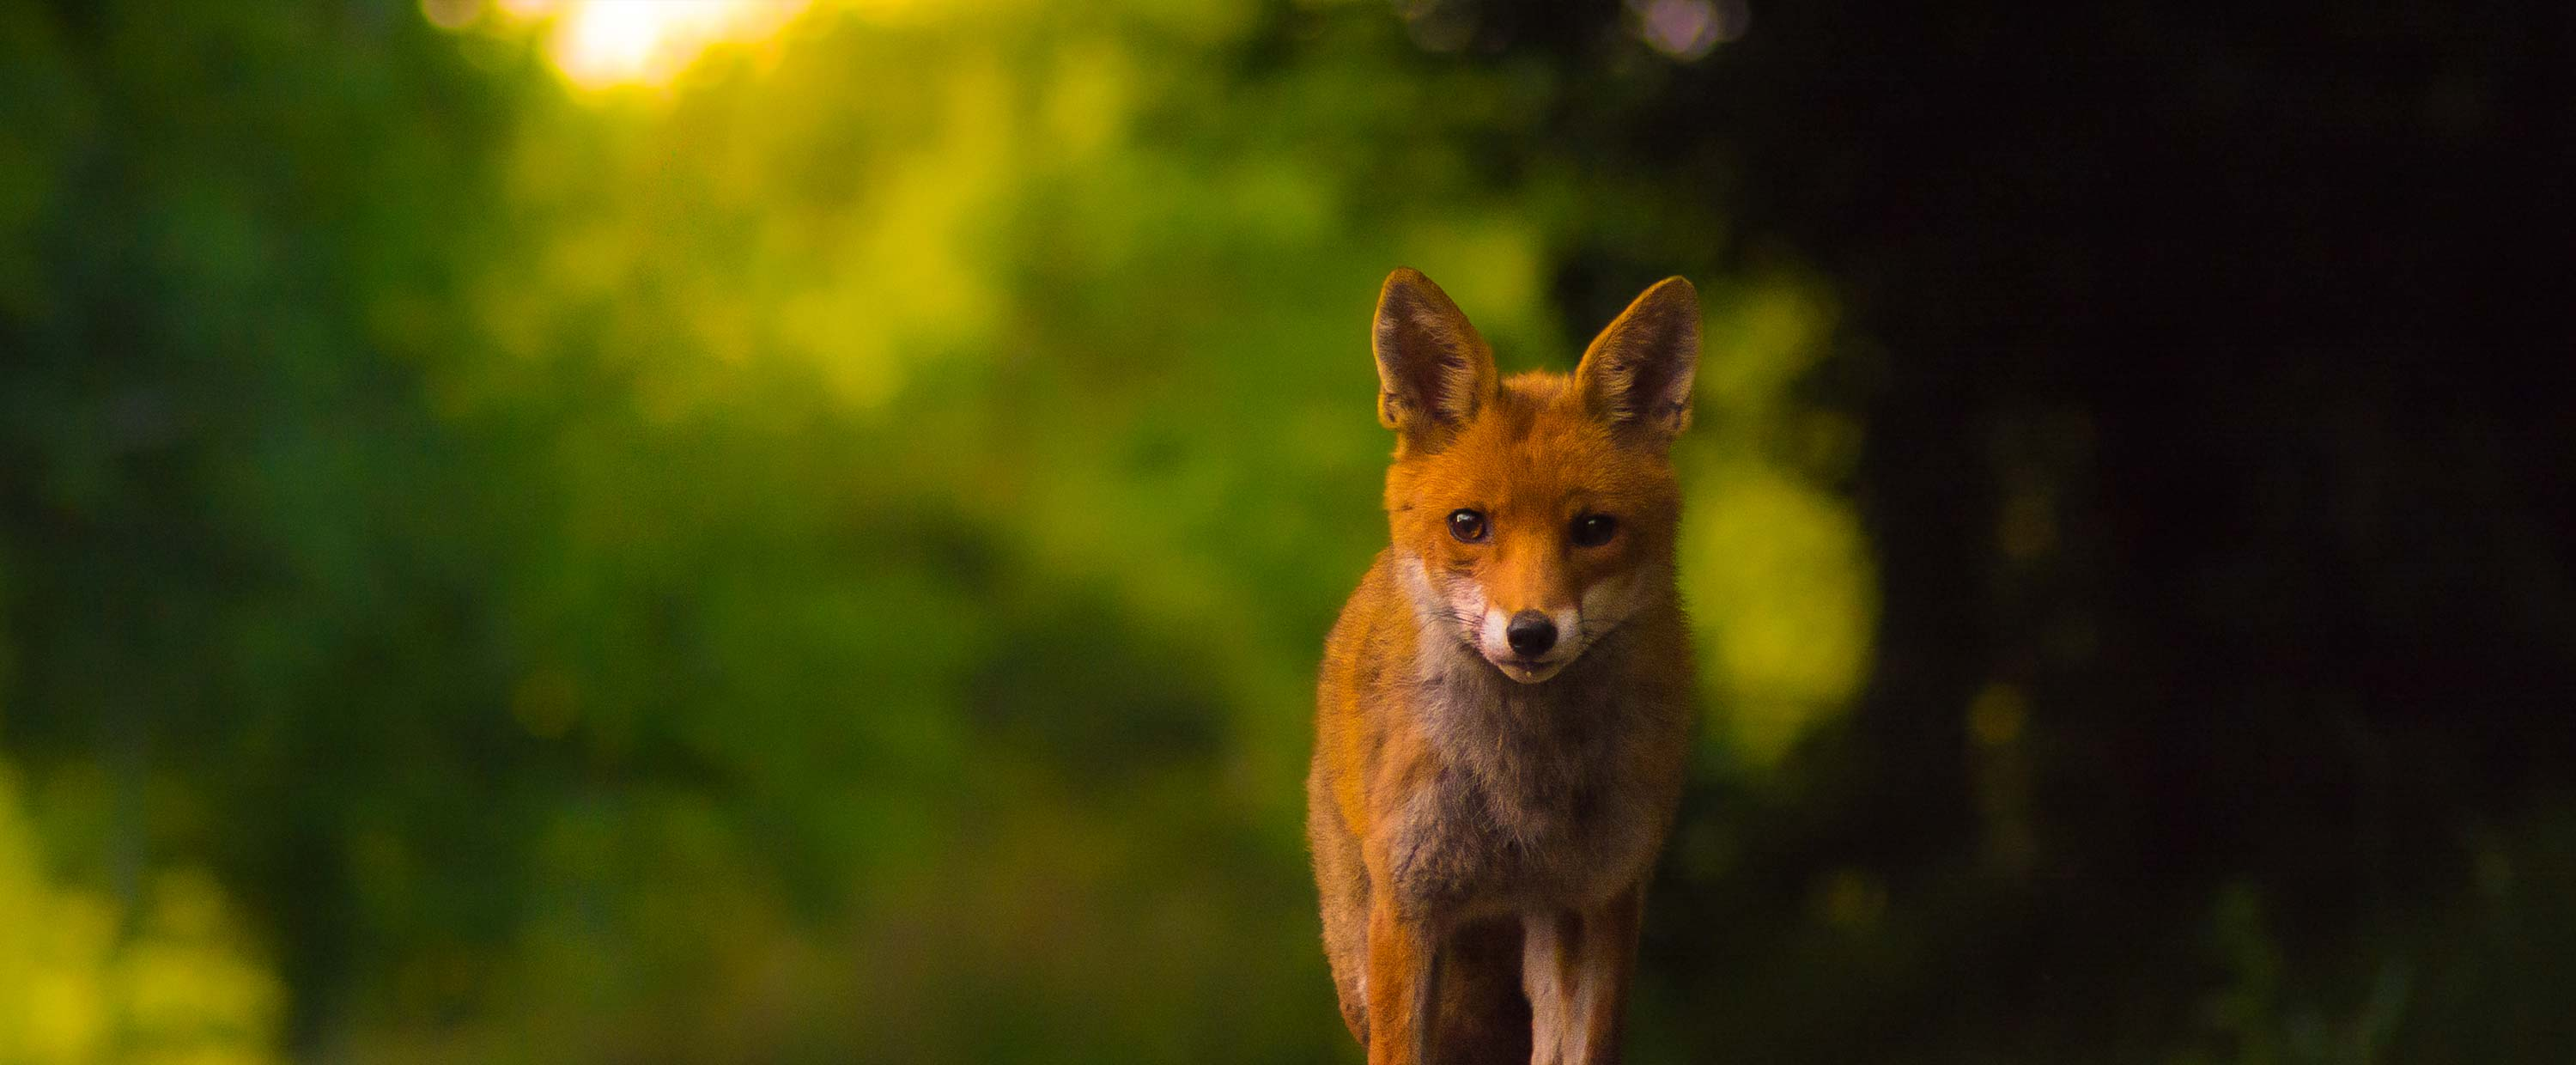 Regard-Renard-by-Guillaume-Coche-Photography.jpg